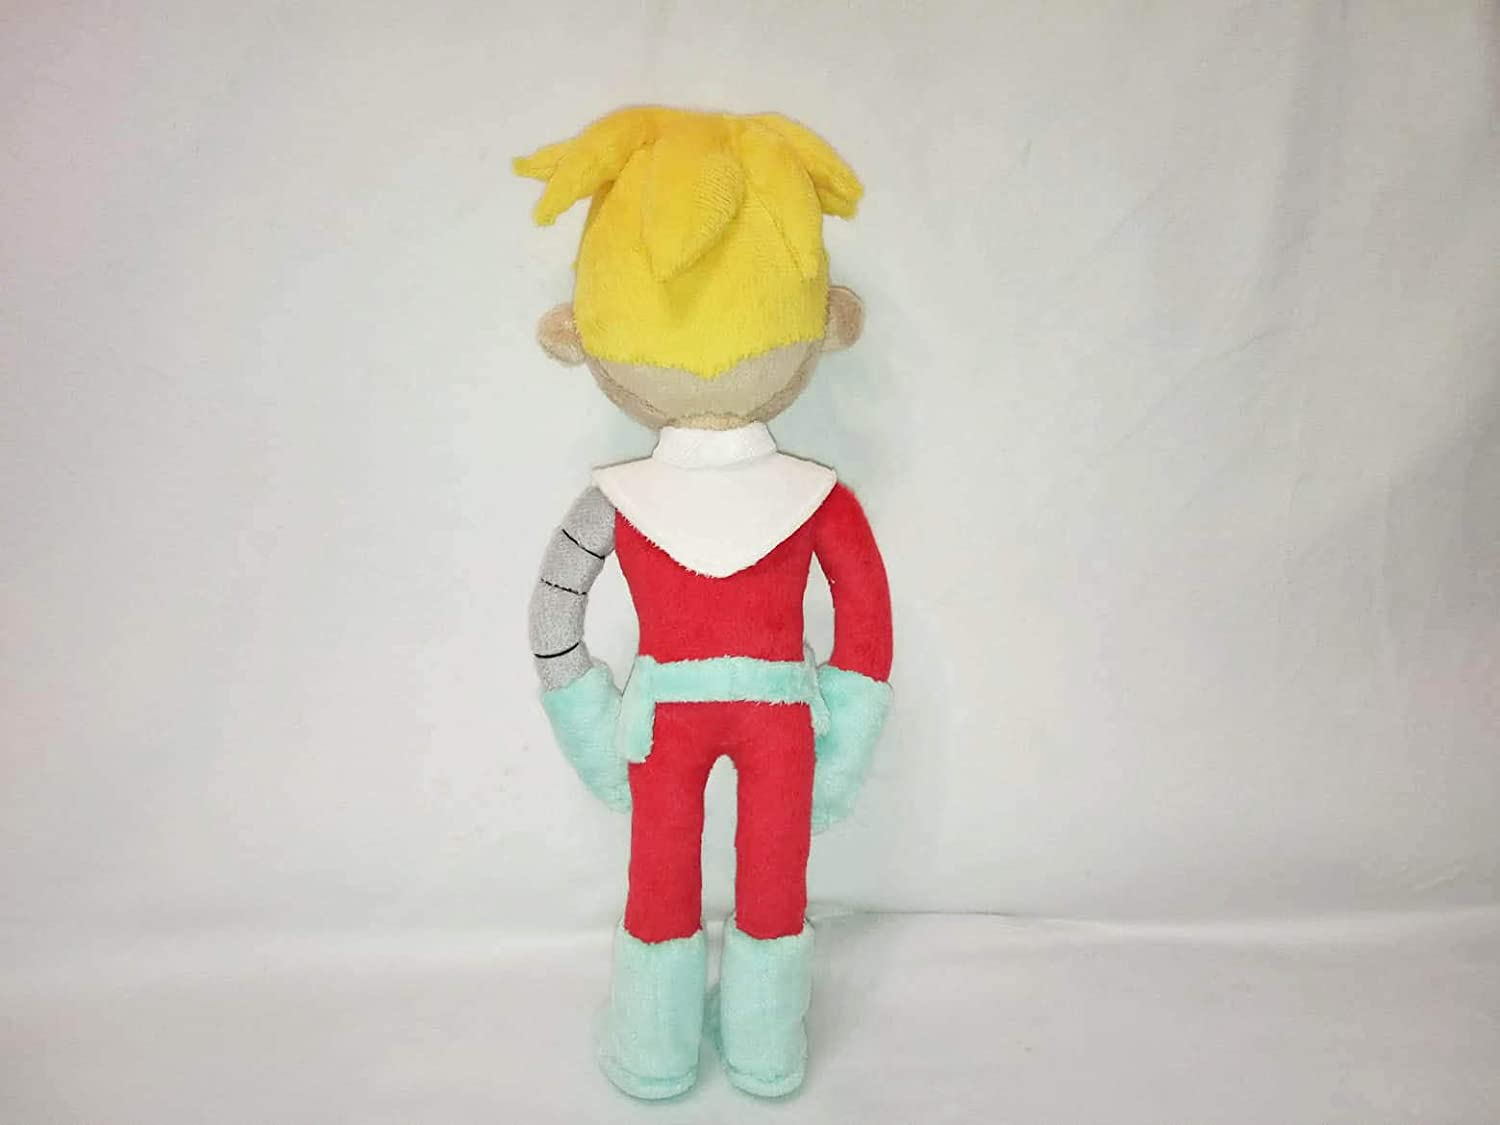 Inspired by Gary Goodspeed from Final Space plush from Final Space inspired fun art custom plush 30 cm minky